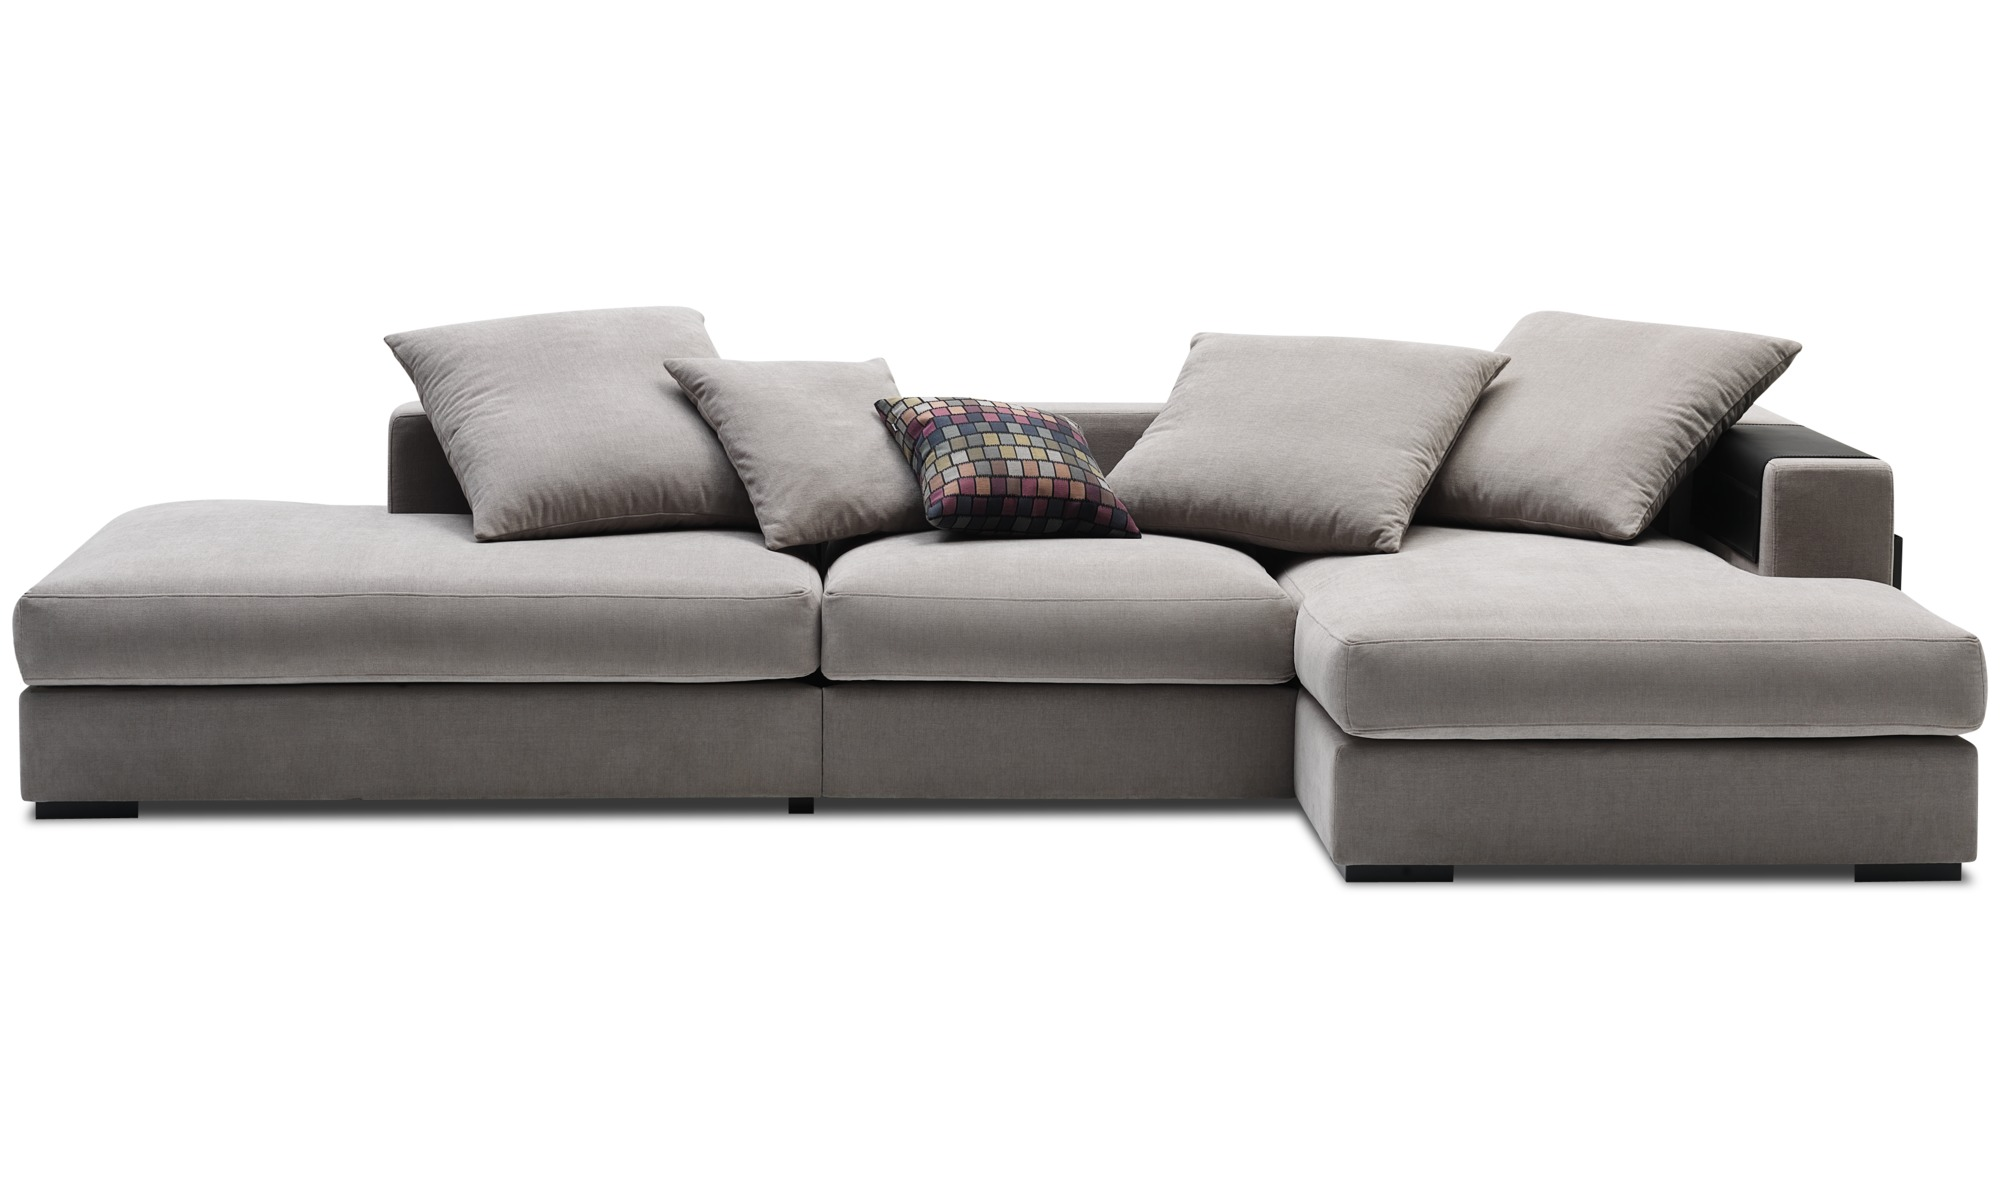 Exceptionnel 3 Seater Sofas   Cenova Sofa With Lounging And Resting Unit   Gray   Fabric